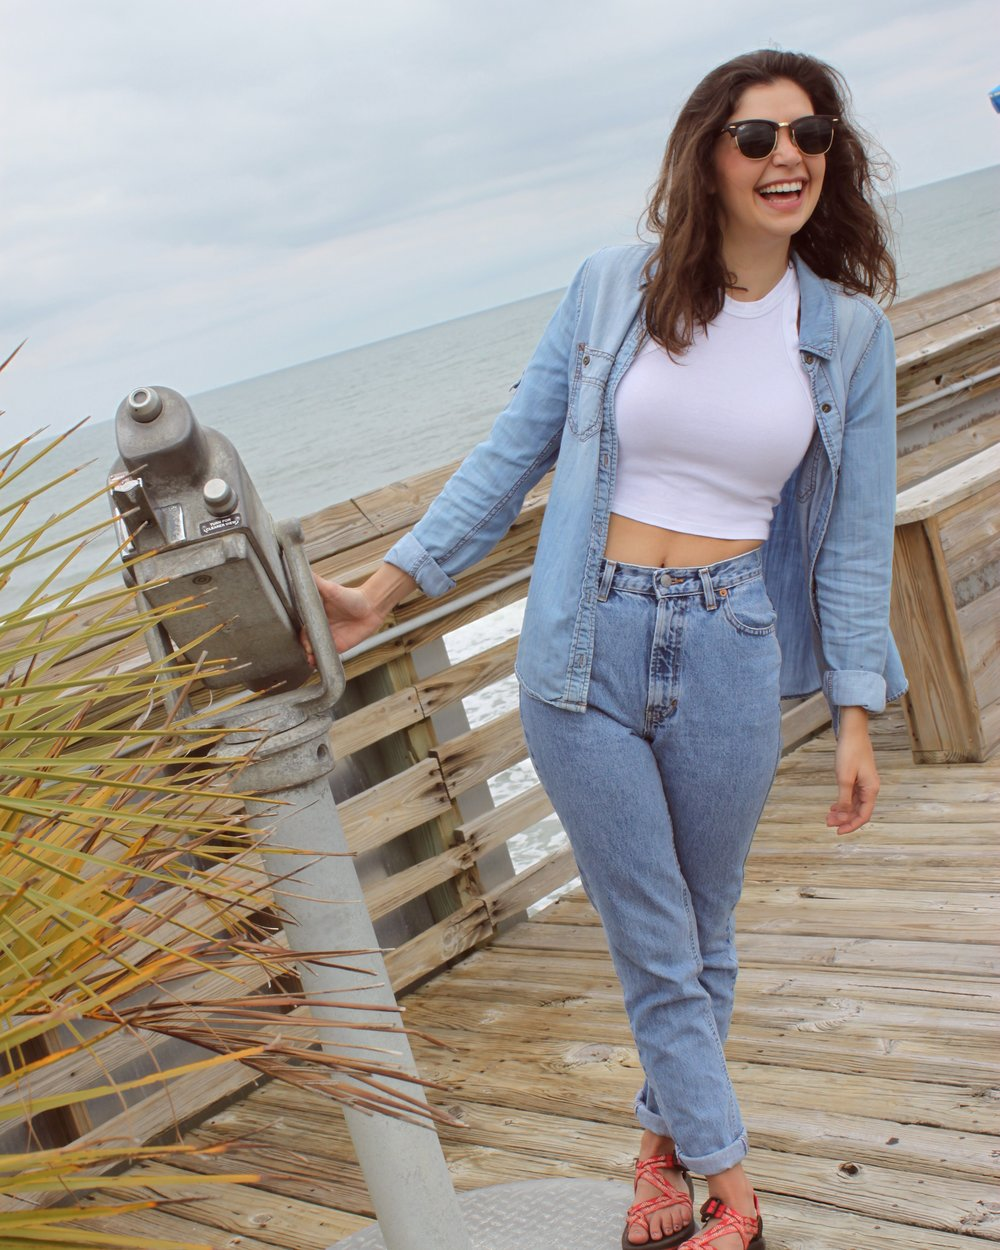 Top     Crop     Jeans     Shoes    Sunnies